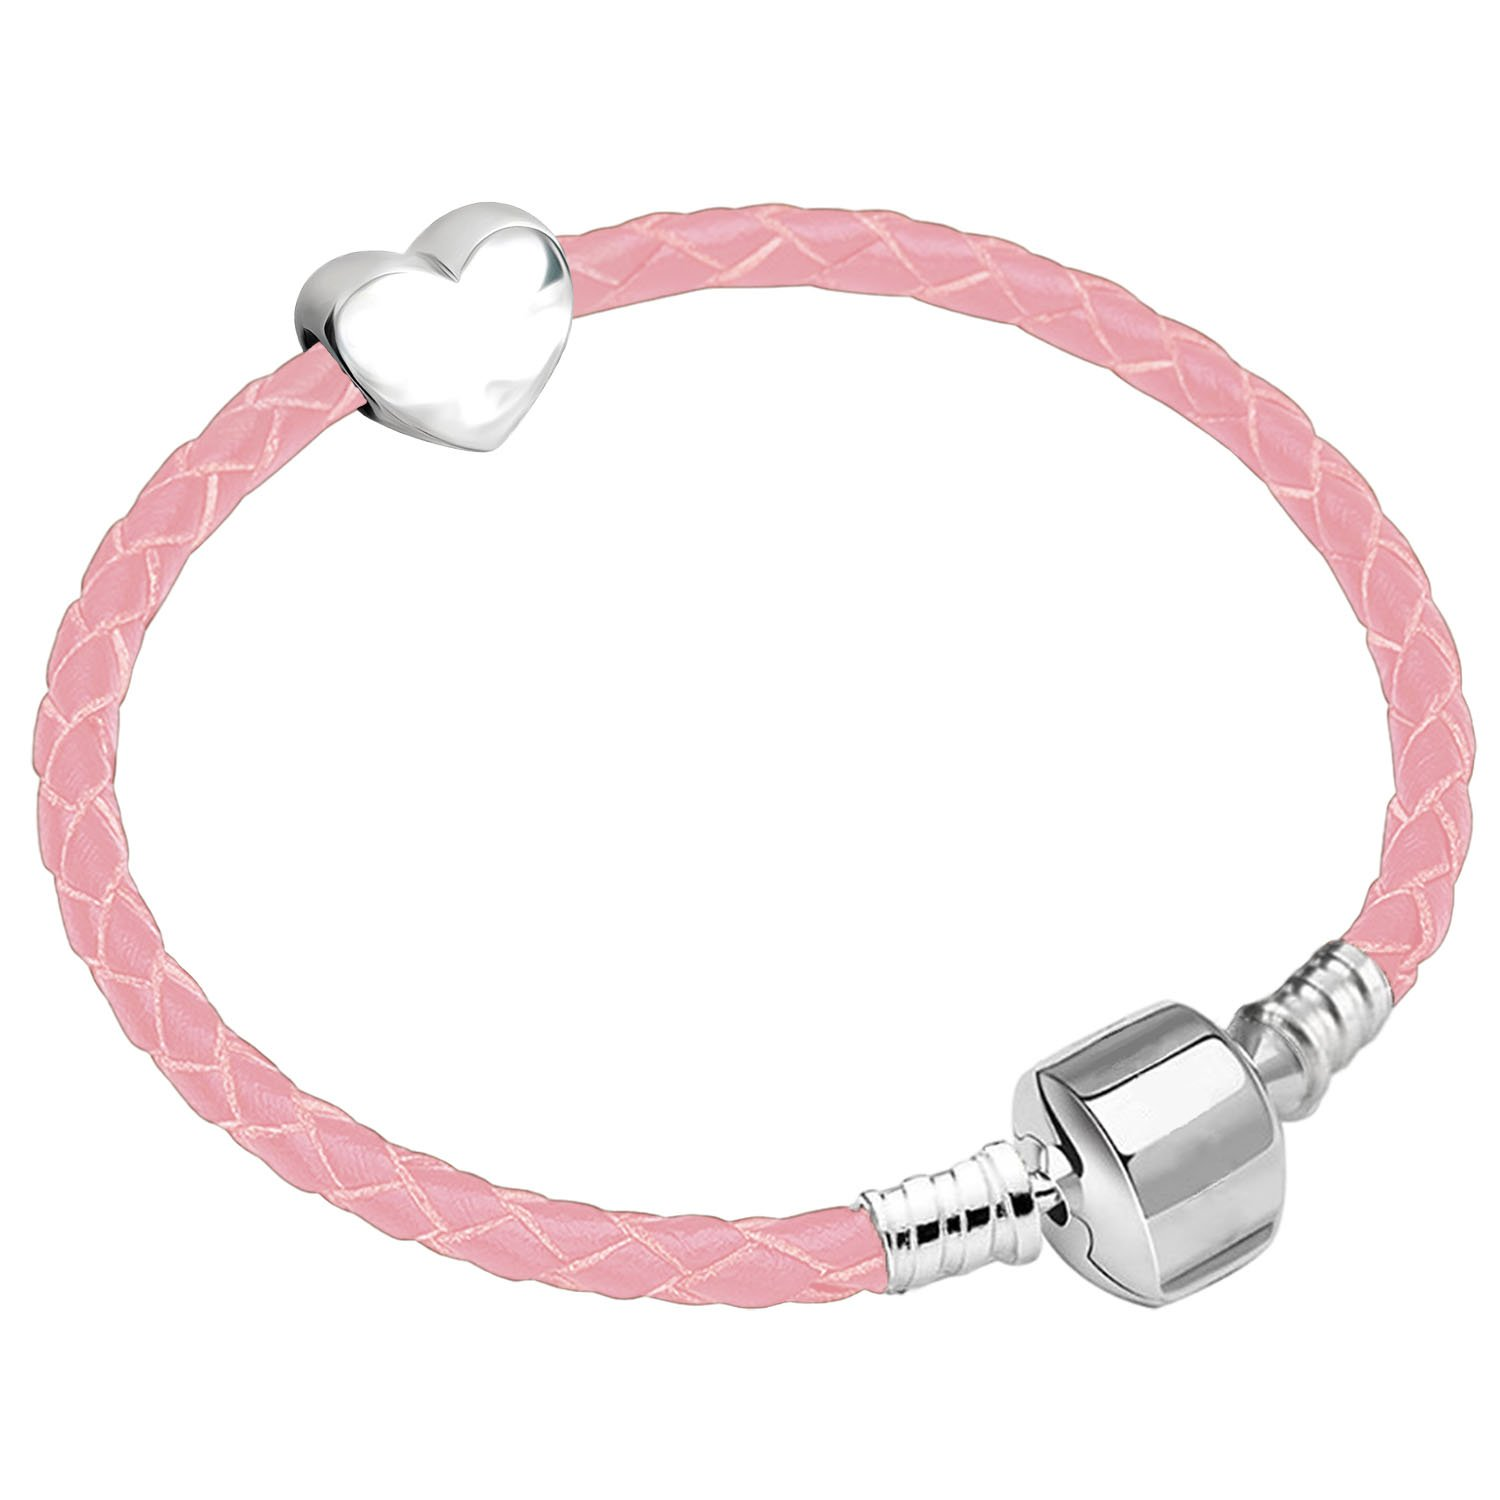 15cm Young Girls Leather Starter Charm Bracelet with Silver Heart and Gift Box for Age 3-5 Years Charm Buddy ®